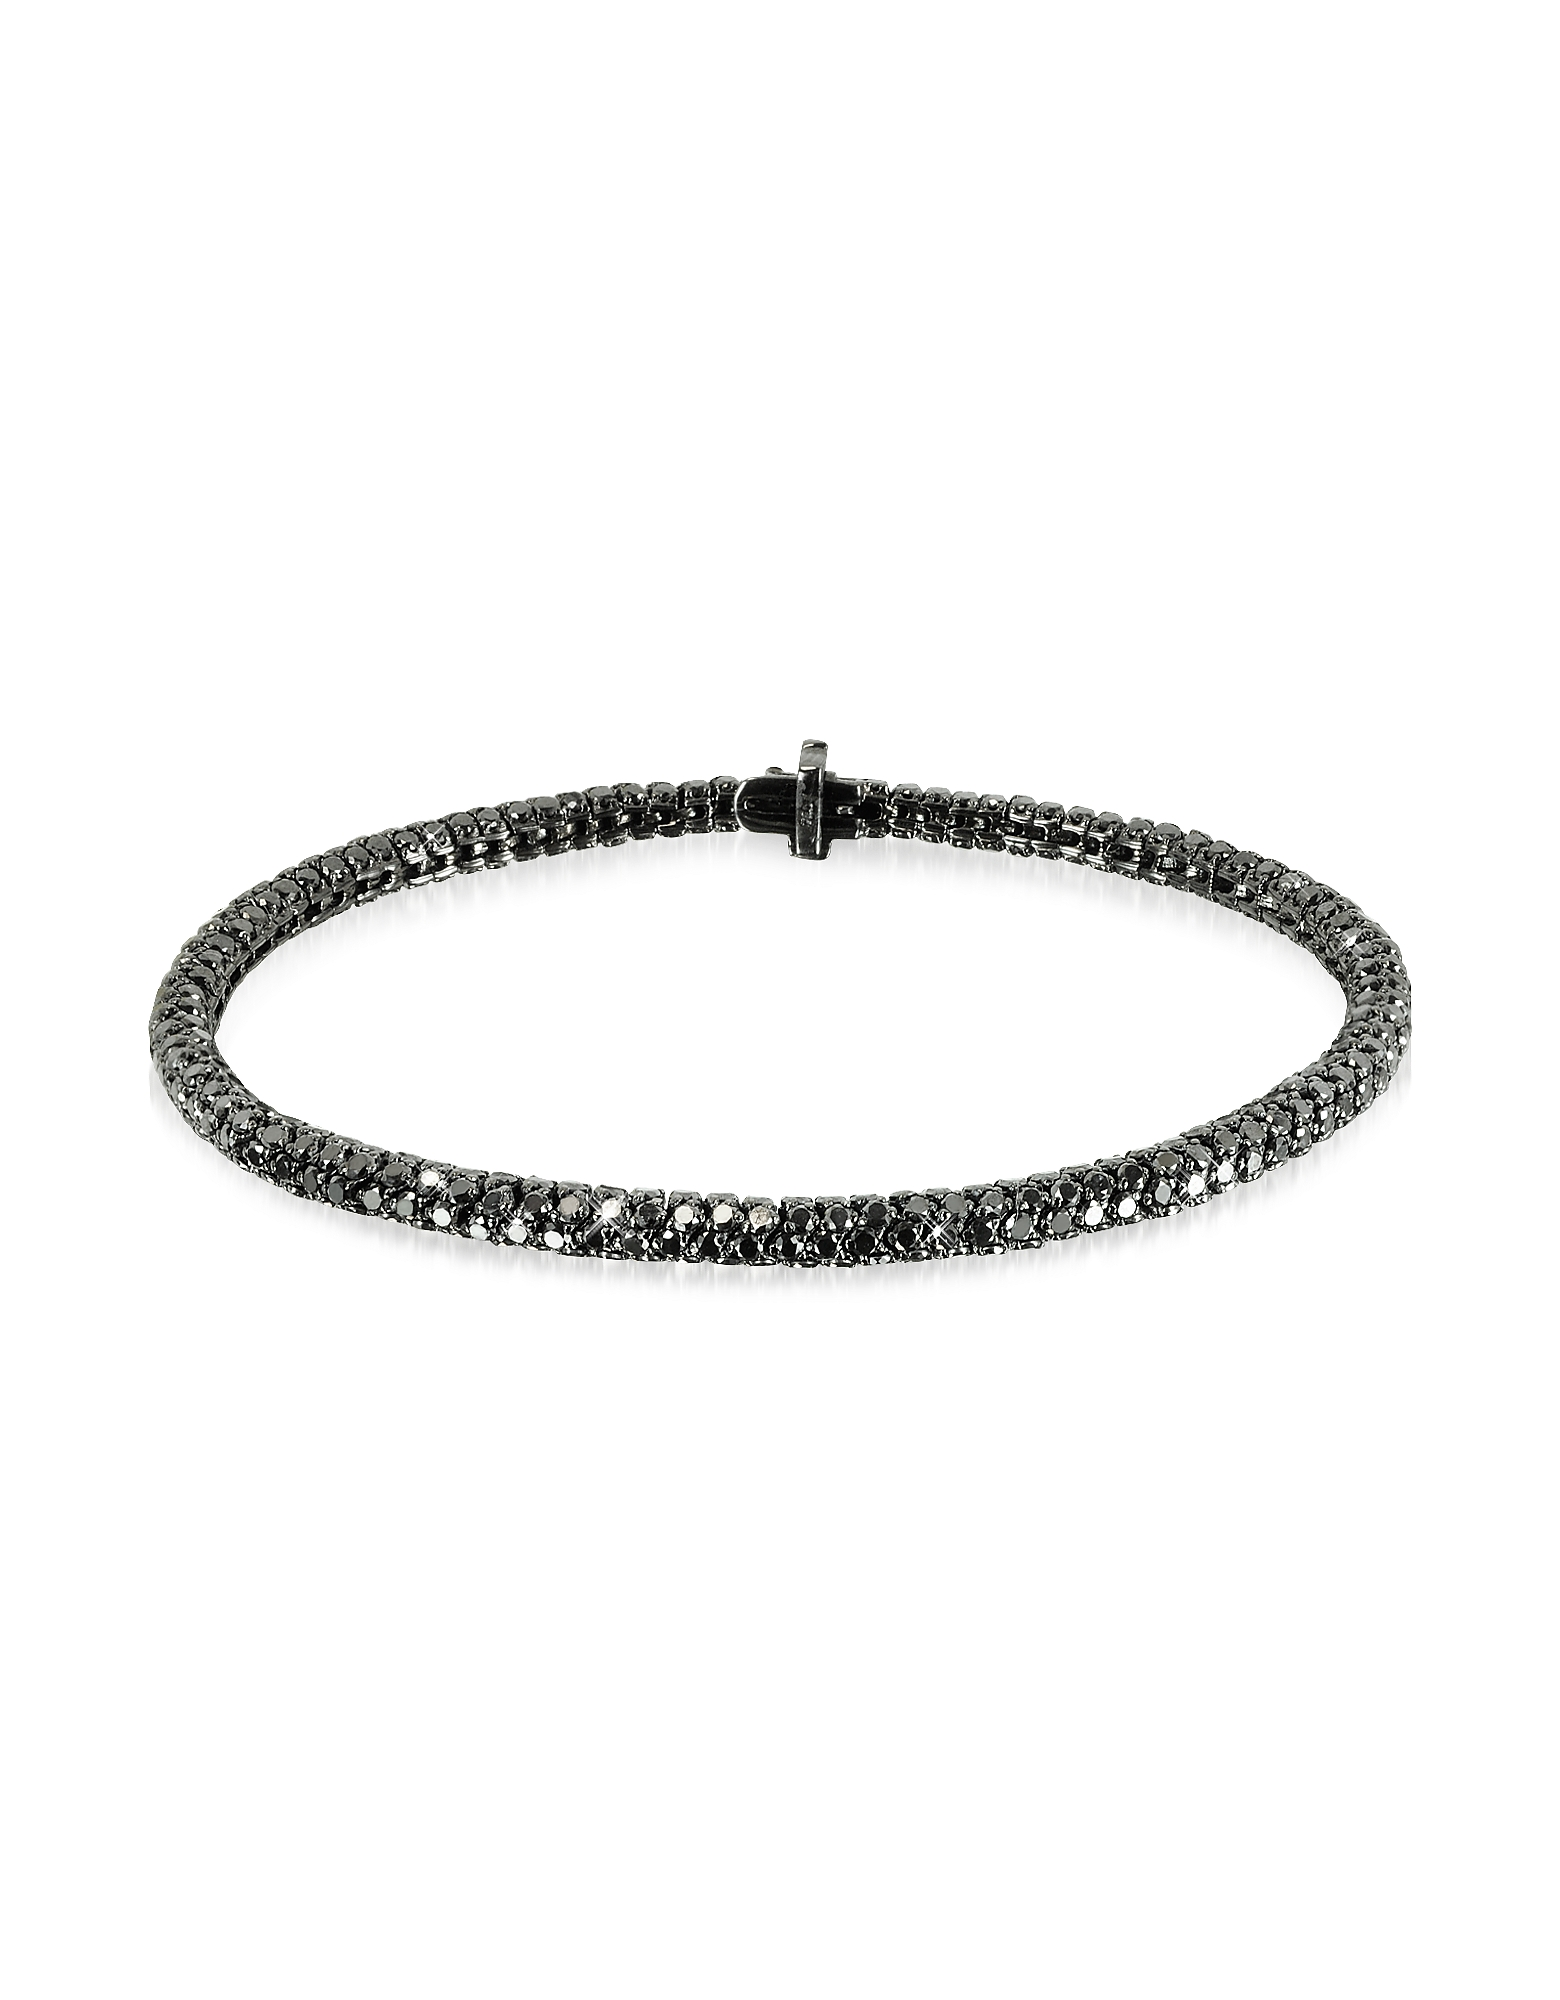 Christian Koban Bracelets, Clou Black Diamond Bracelet